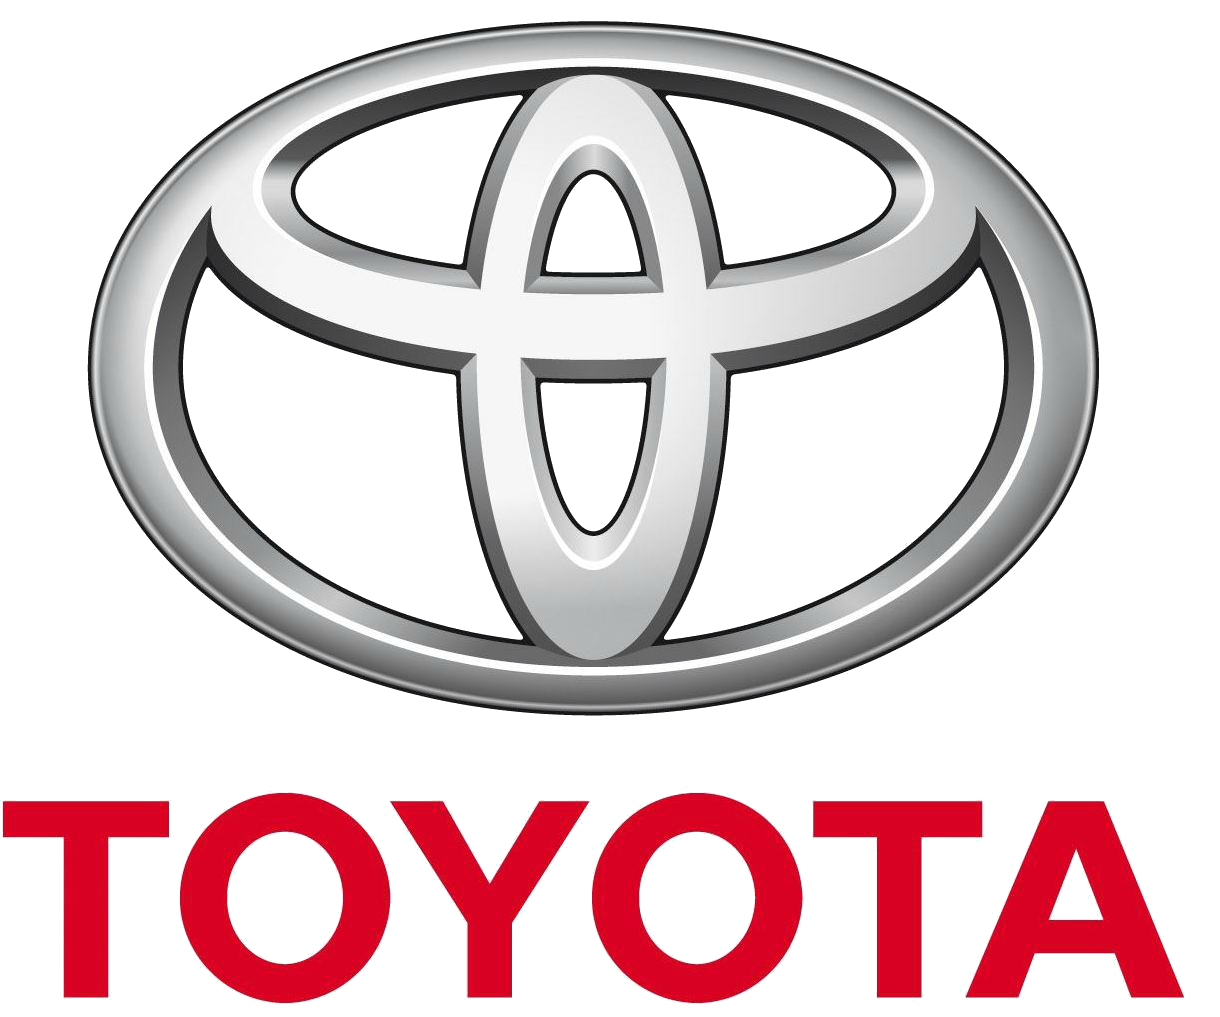 Toyota logo toyota car symbol meaning and history car brand toyota logo meaning and history buycottarizona